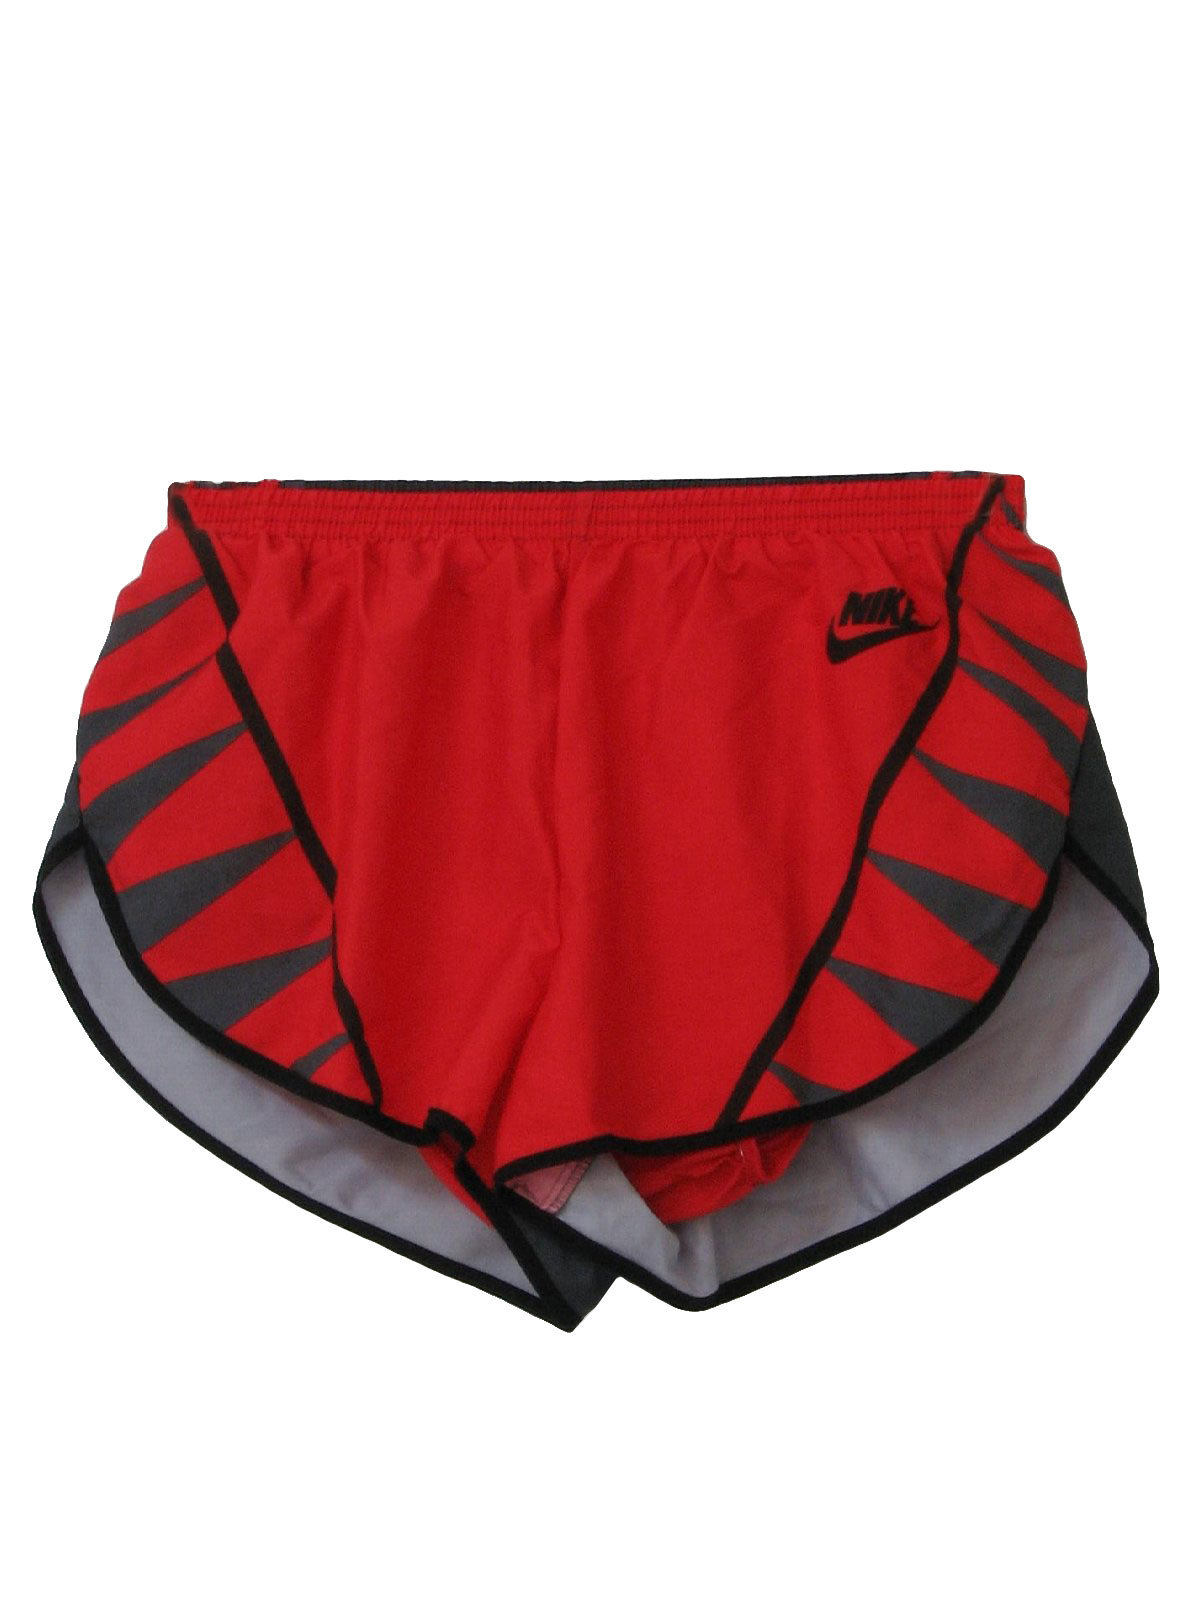 1990 S Vintage Nike Shorts 90s Nike Mens Red Black And